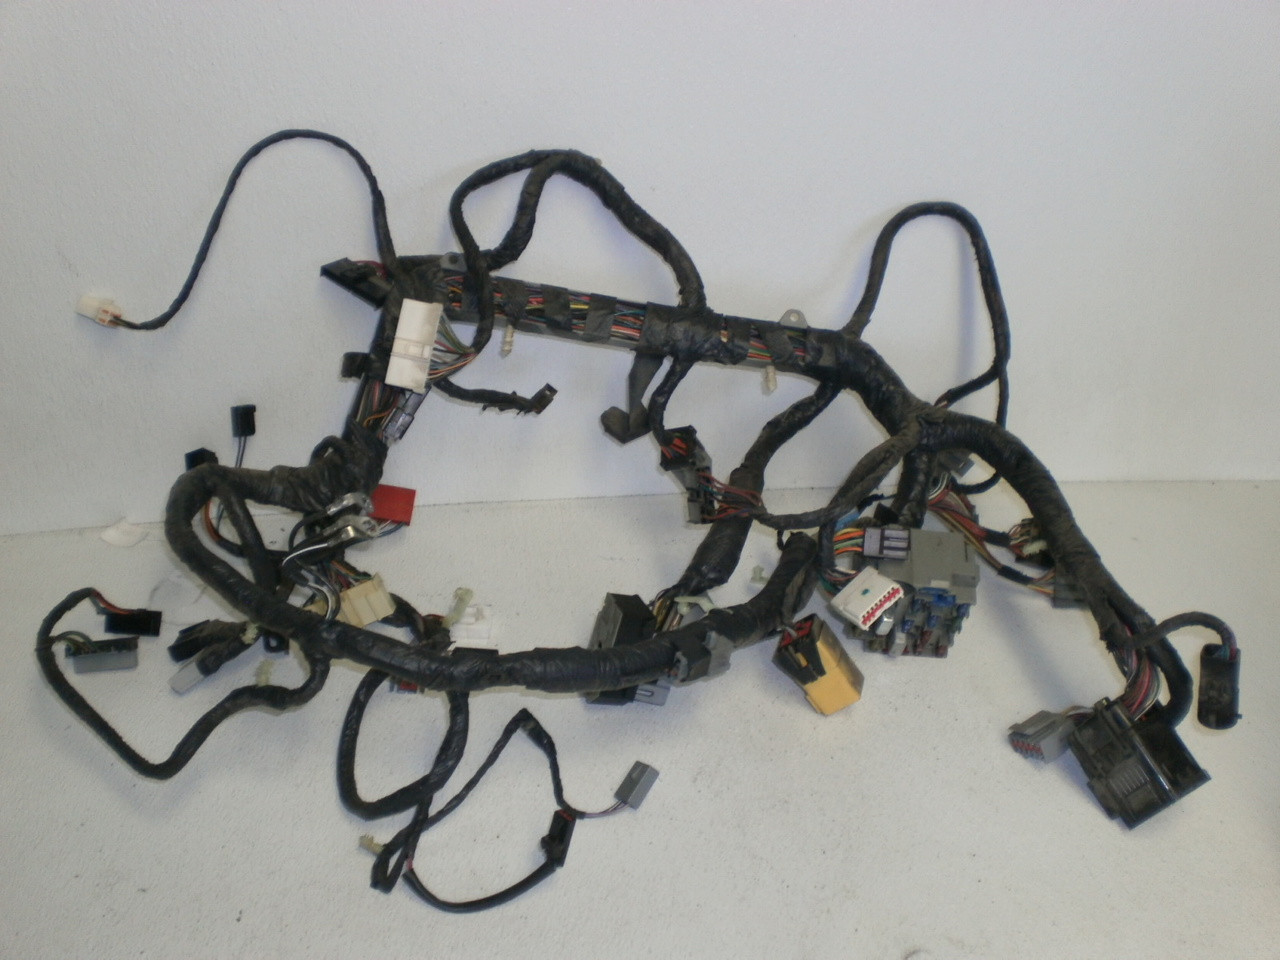 Ford Contour Engine Wiring Harness on 95 ford contour timing belt, 95 ford contour headlights, 95 ford contour speed sensor, 4 3 swap harness, 95 ford contour master cylinder, 95 ford contour trouble code lookup, 95 ford contour parts, 07 ford explorer transmission harness,